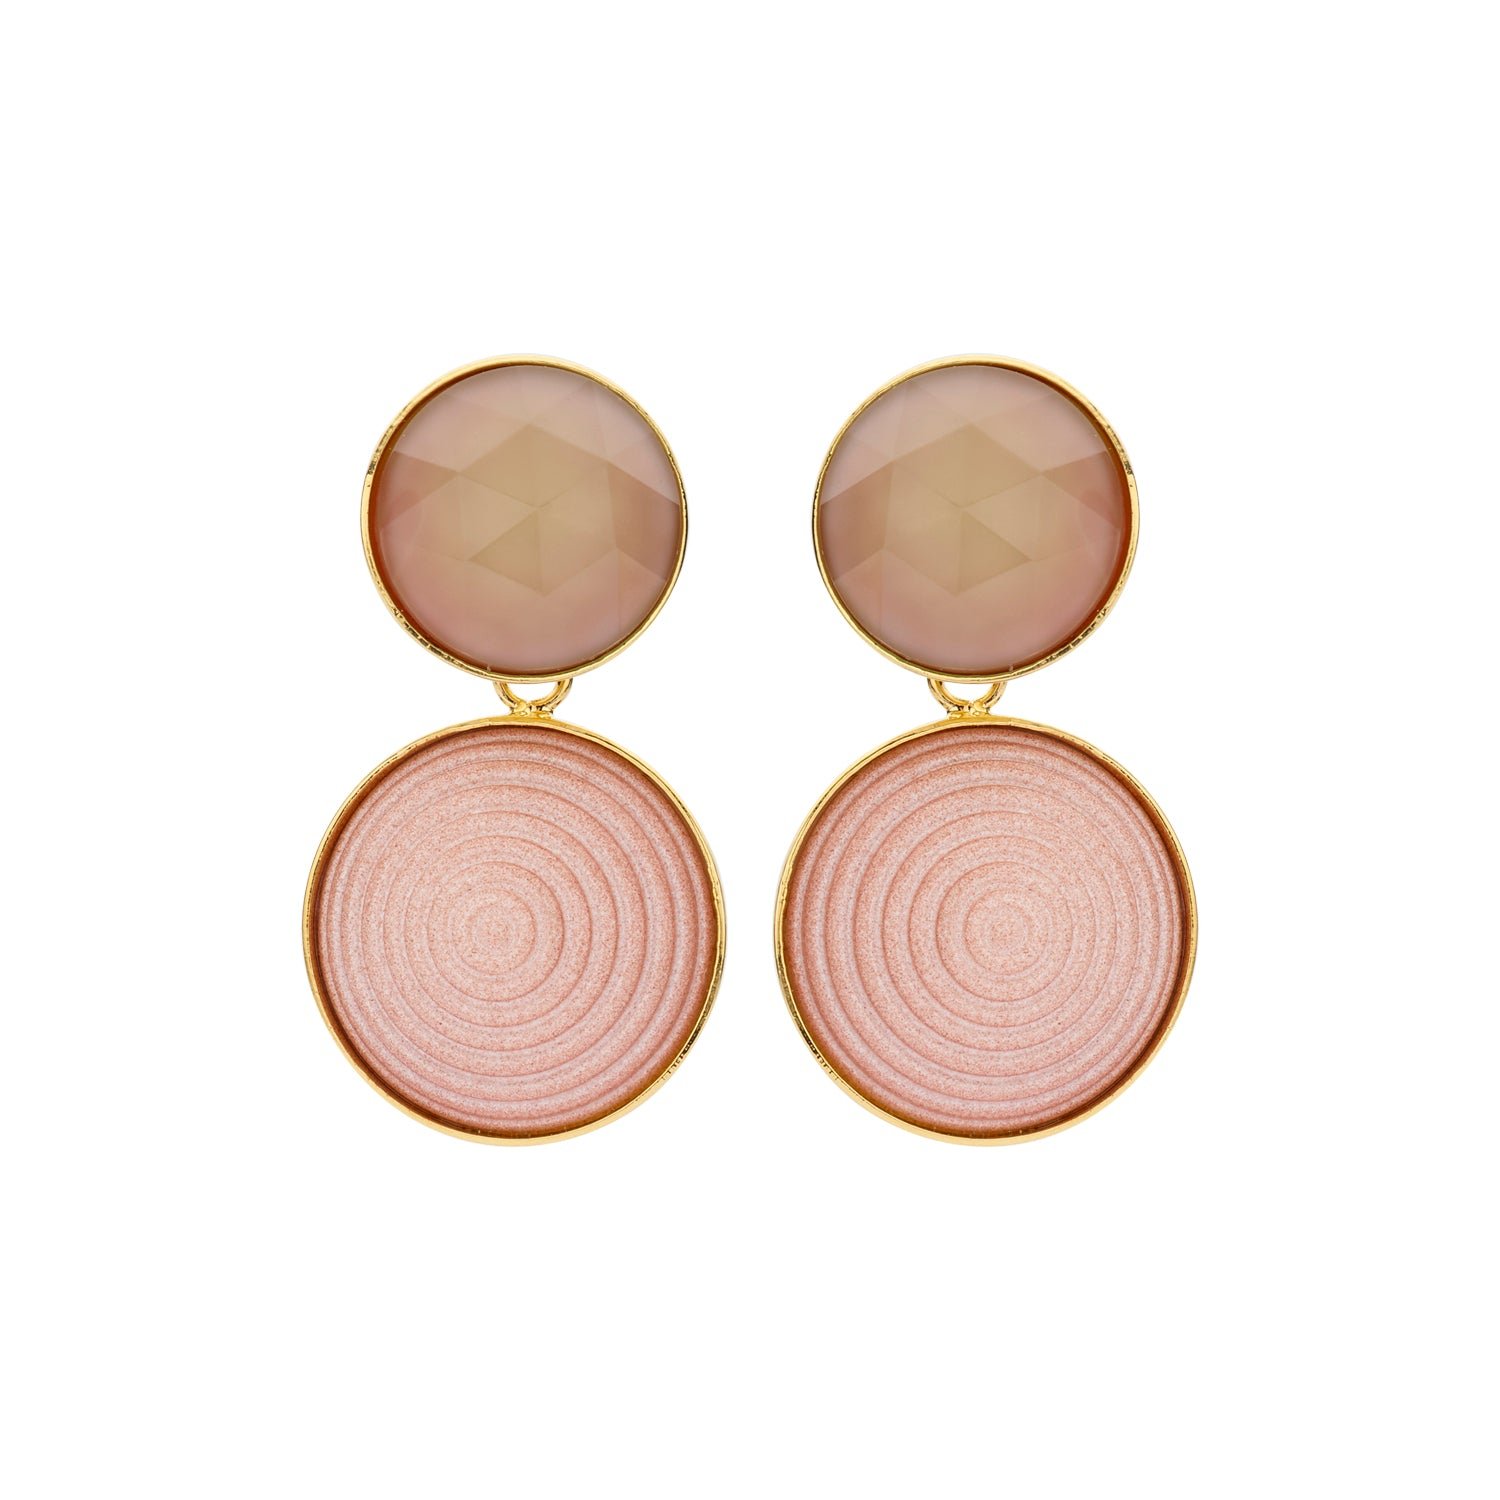 Lines Caro old rose earrings - Souvenirs de Pomme